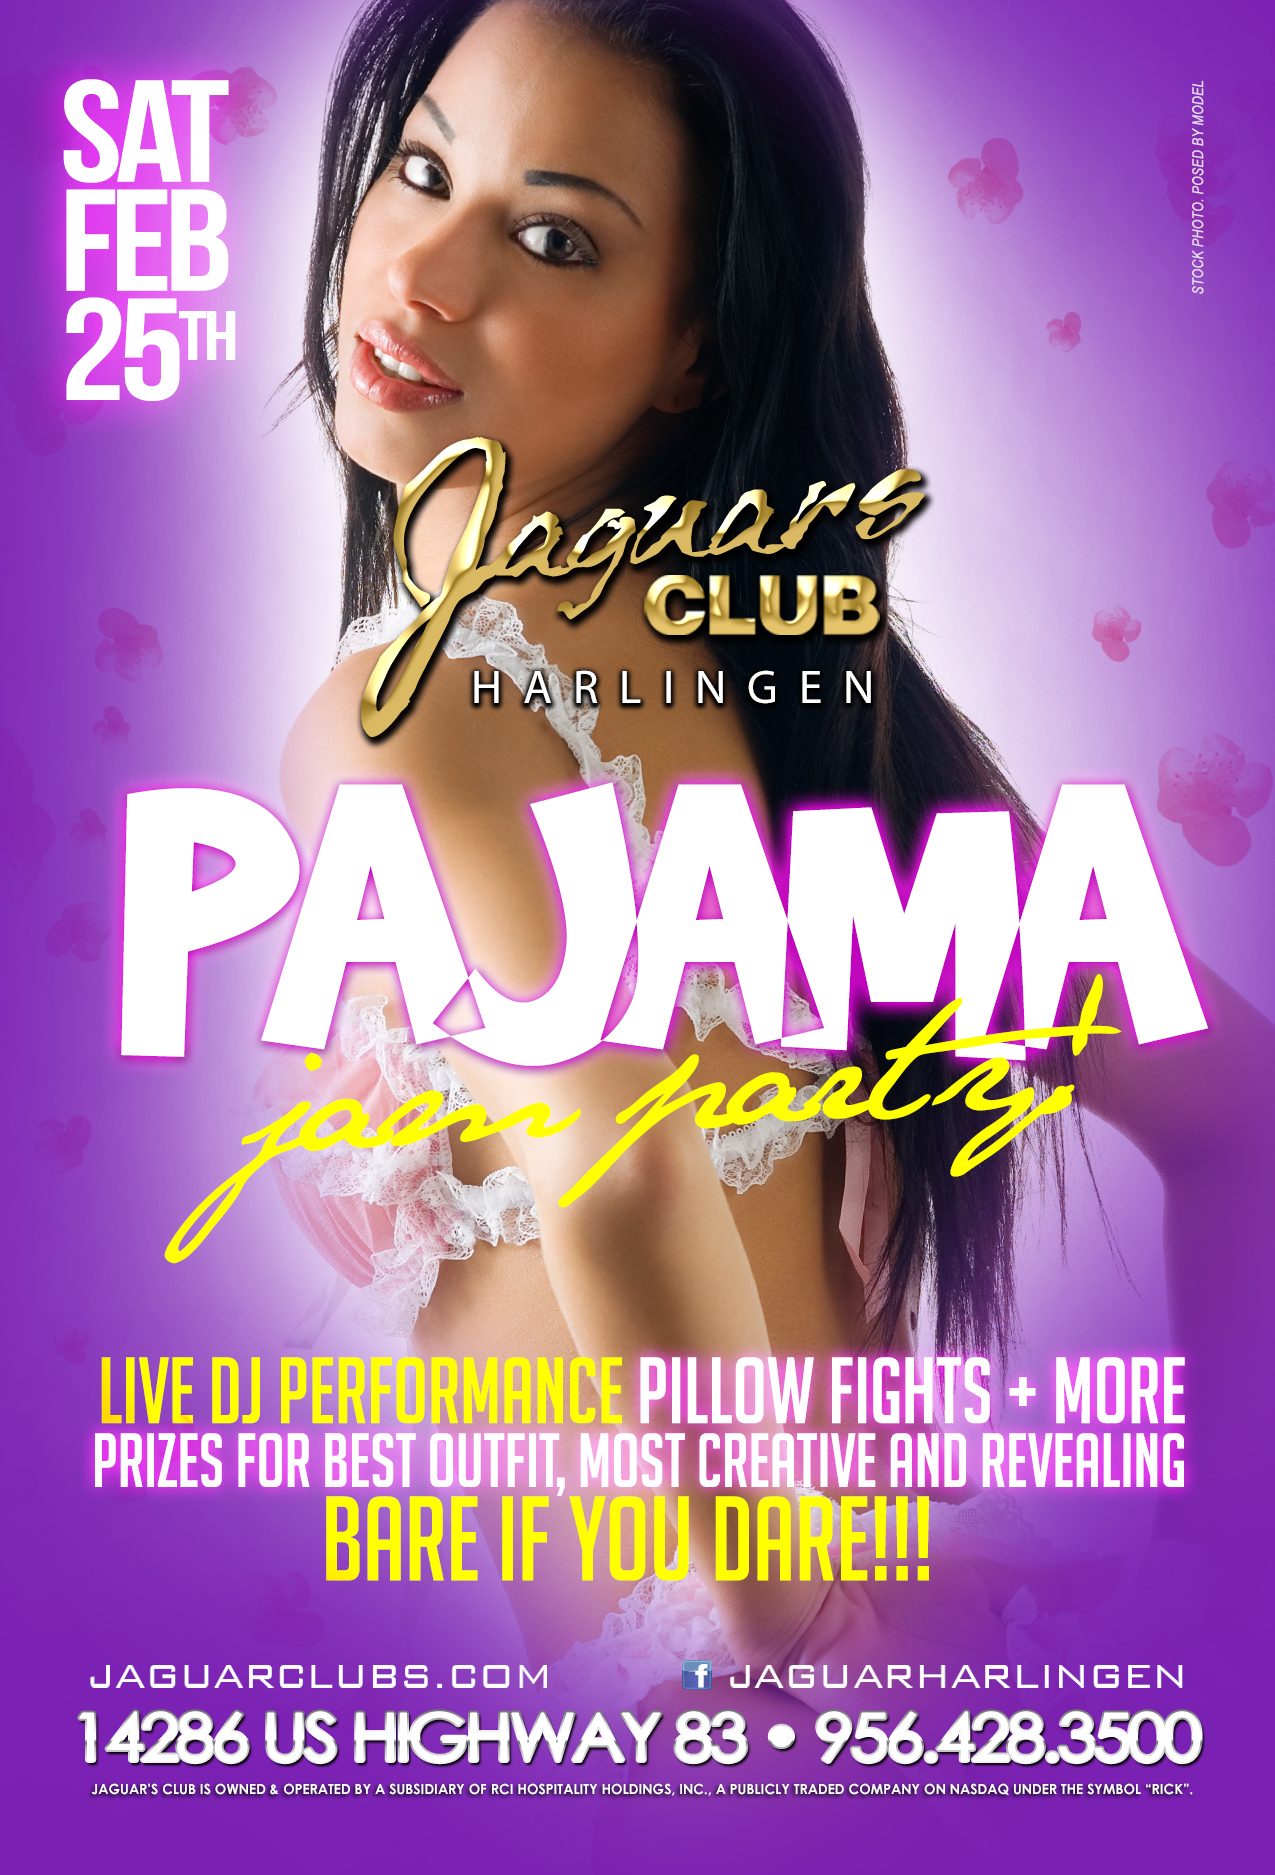 Pajama Jam Party - Jaguars Club Harlingen Presents: Pajama Jam Party!